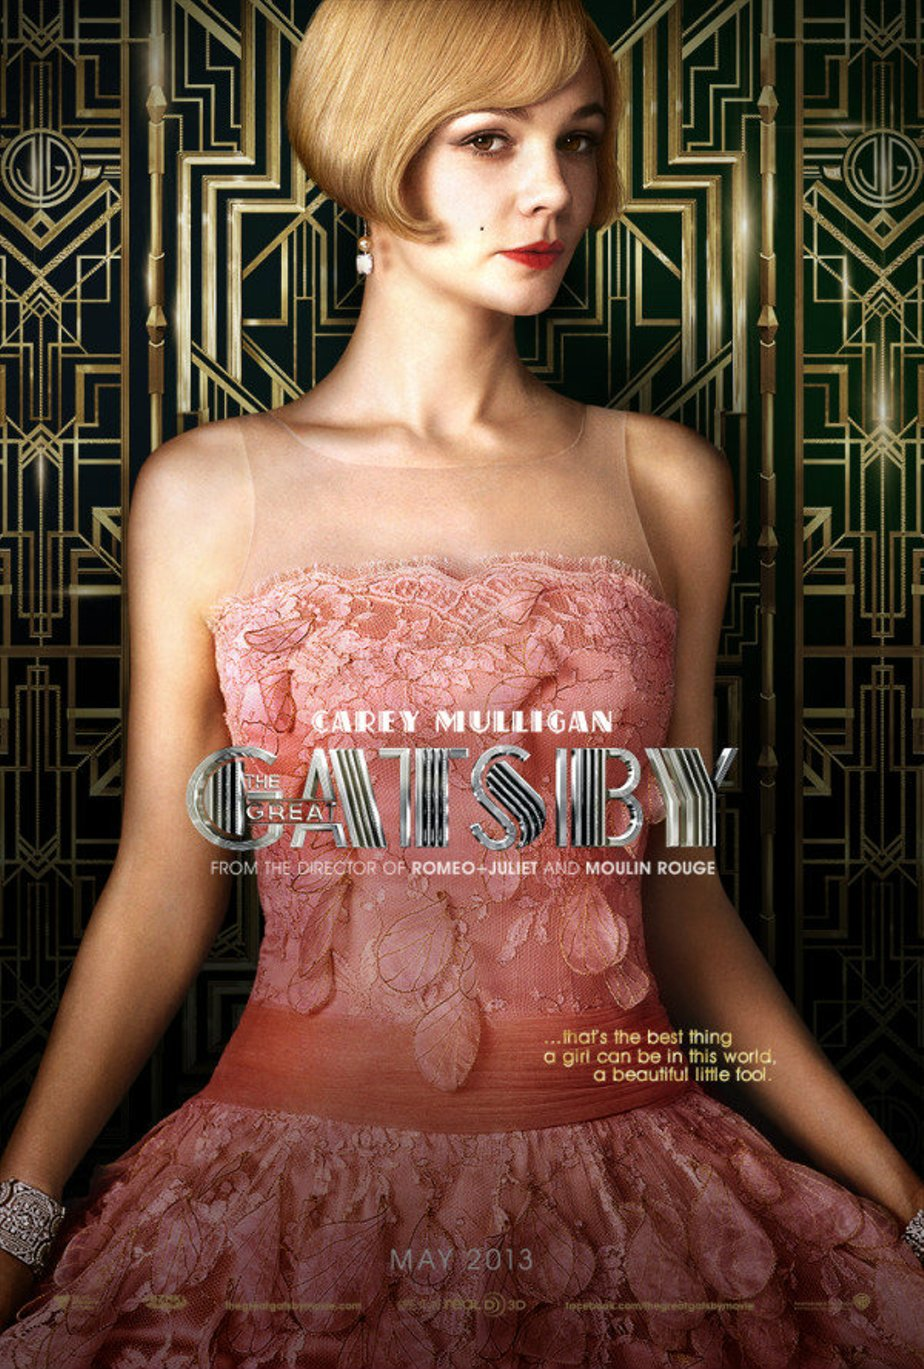 daisy buchanan essays Free daisy buchanan of the great gatsby papers, essays, and research papers.